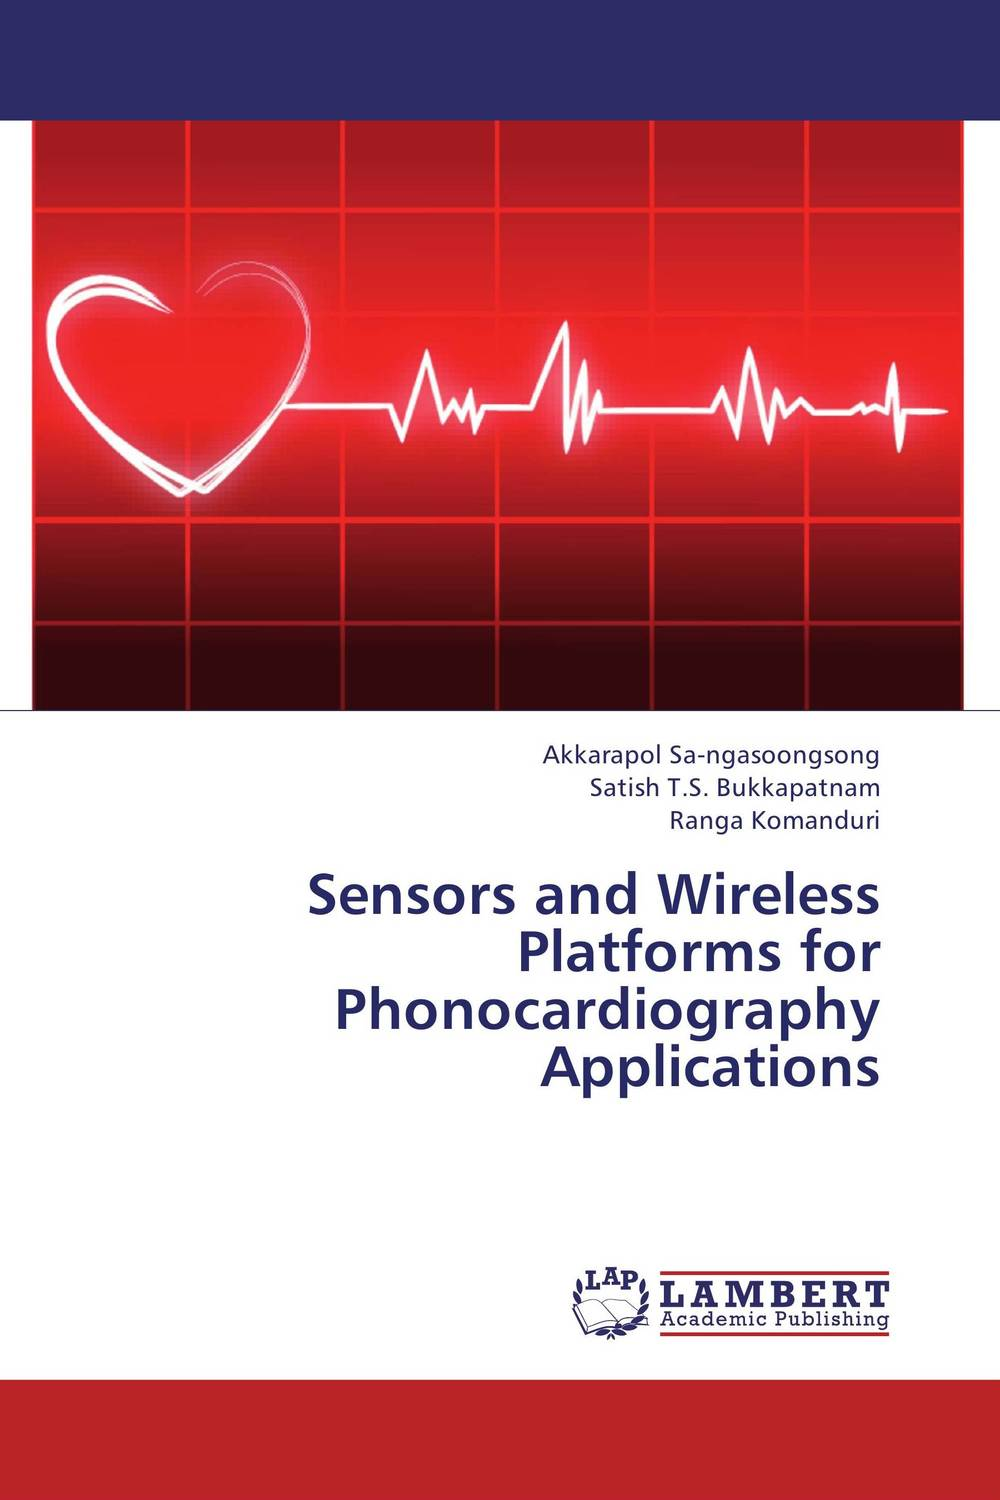 Sensors and Wireless Platforms for Phonocardiography Applications